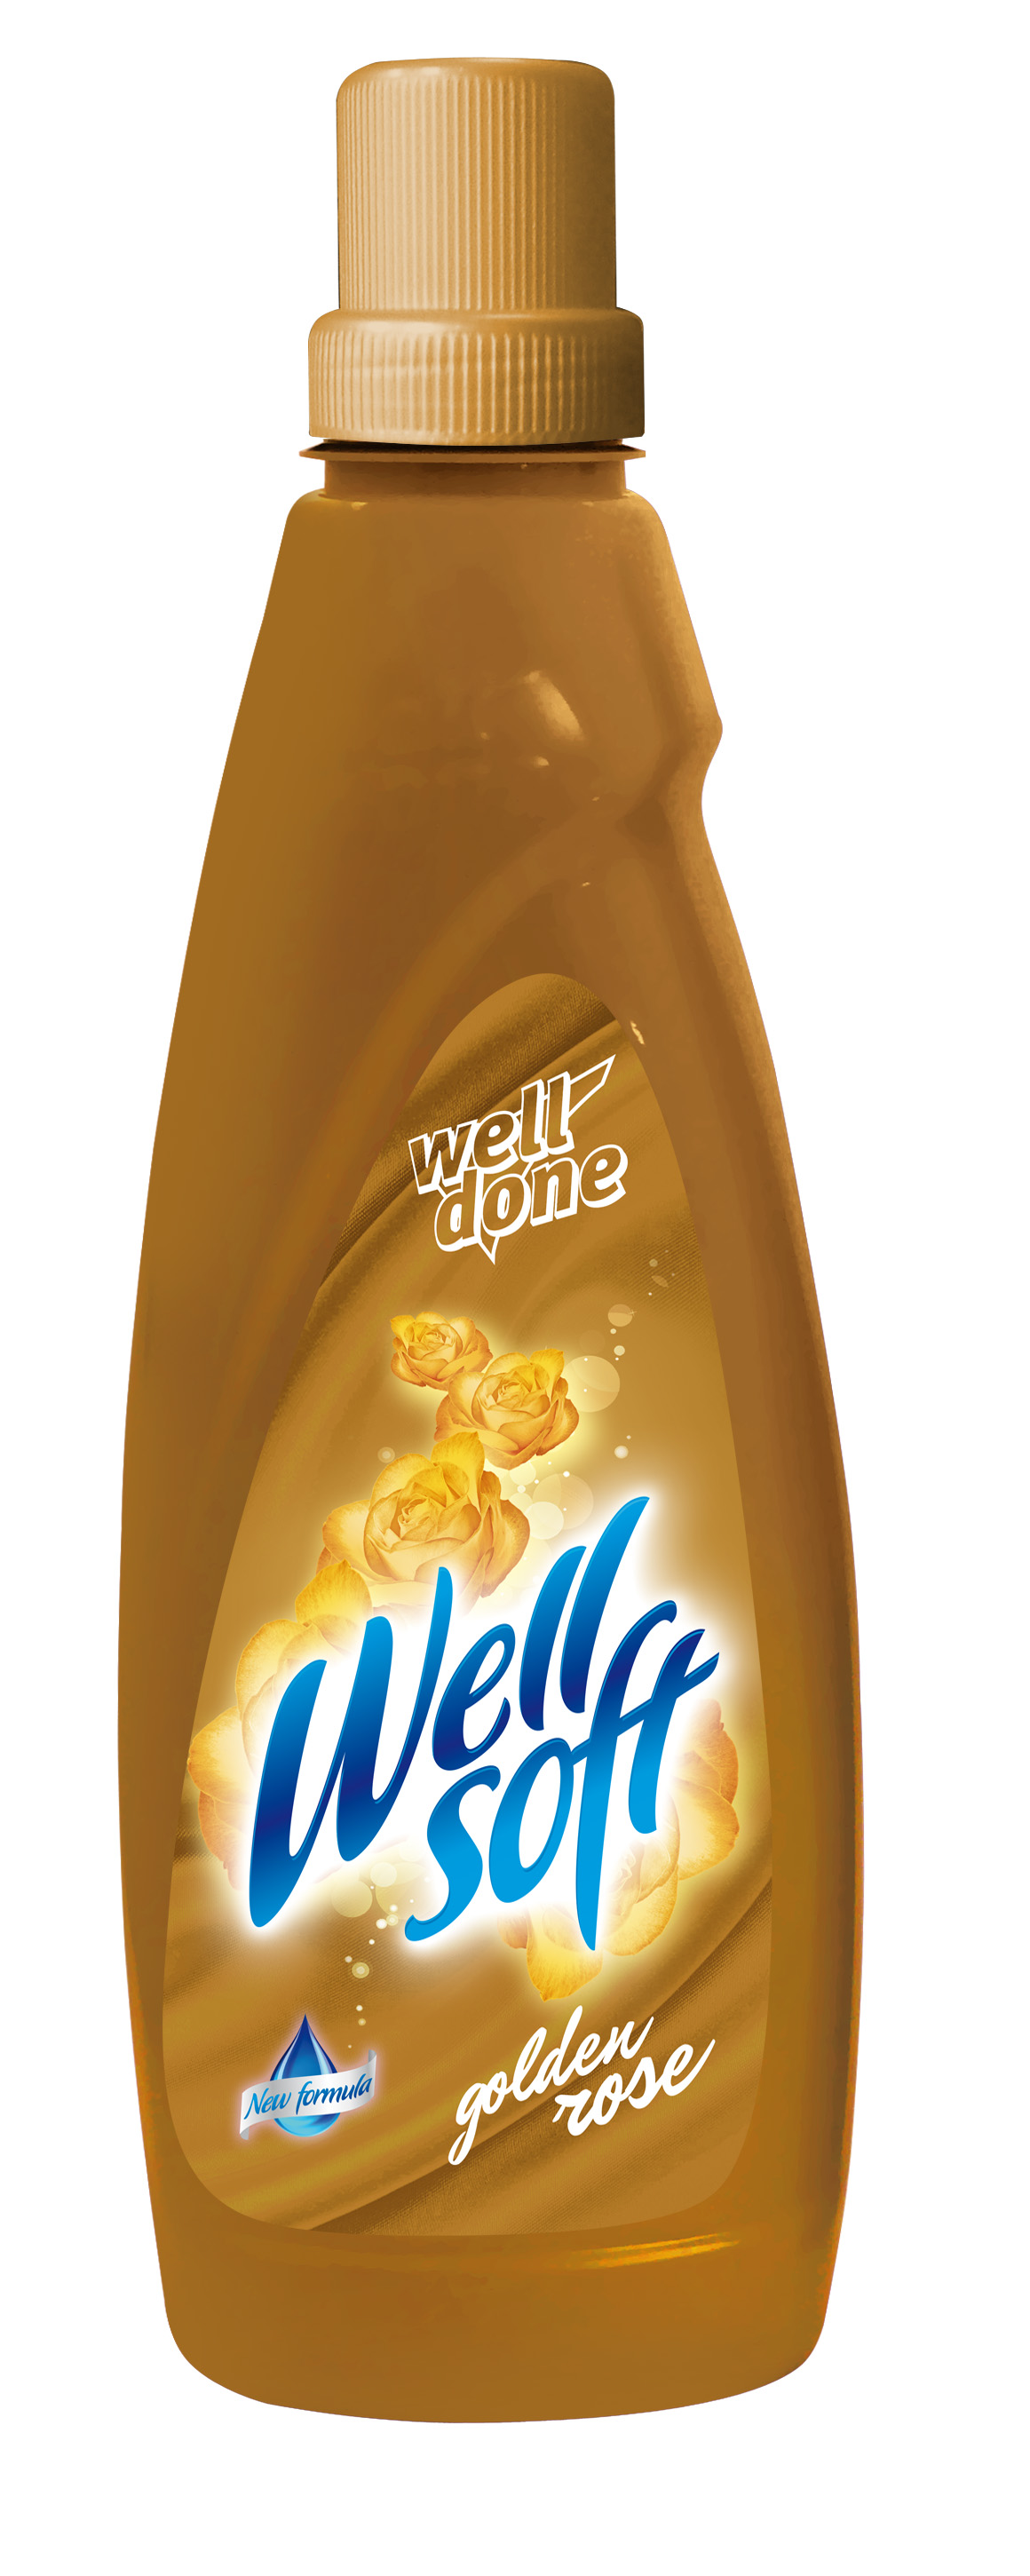 Wellsoft-koncentrovaná aviváž Golden Rose,1000ml